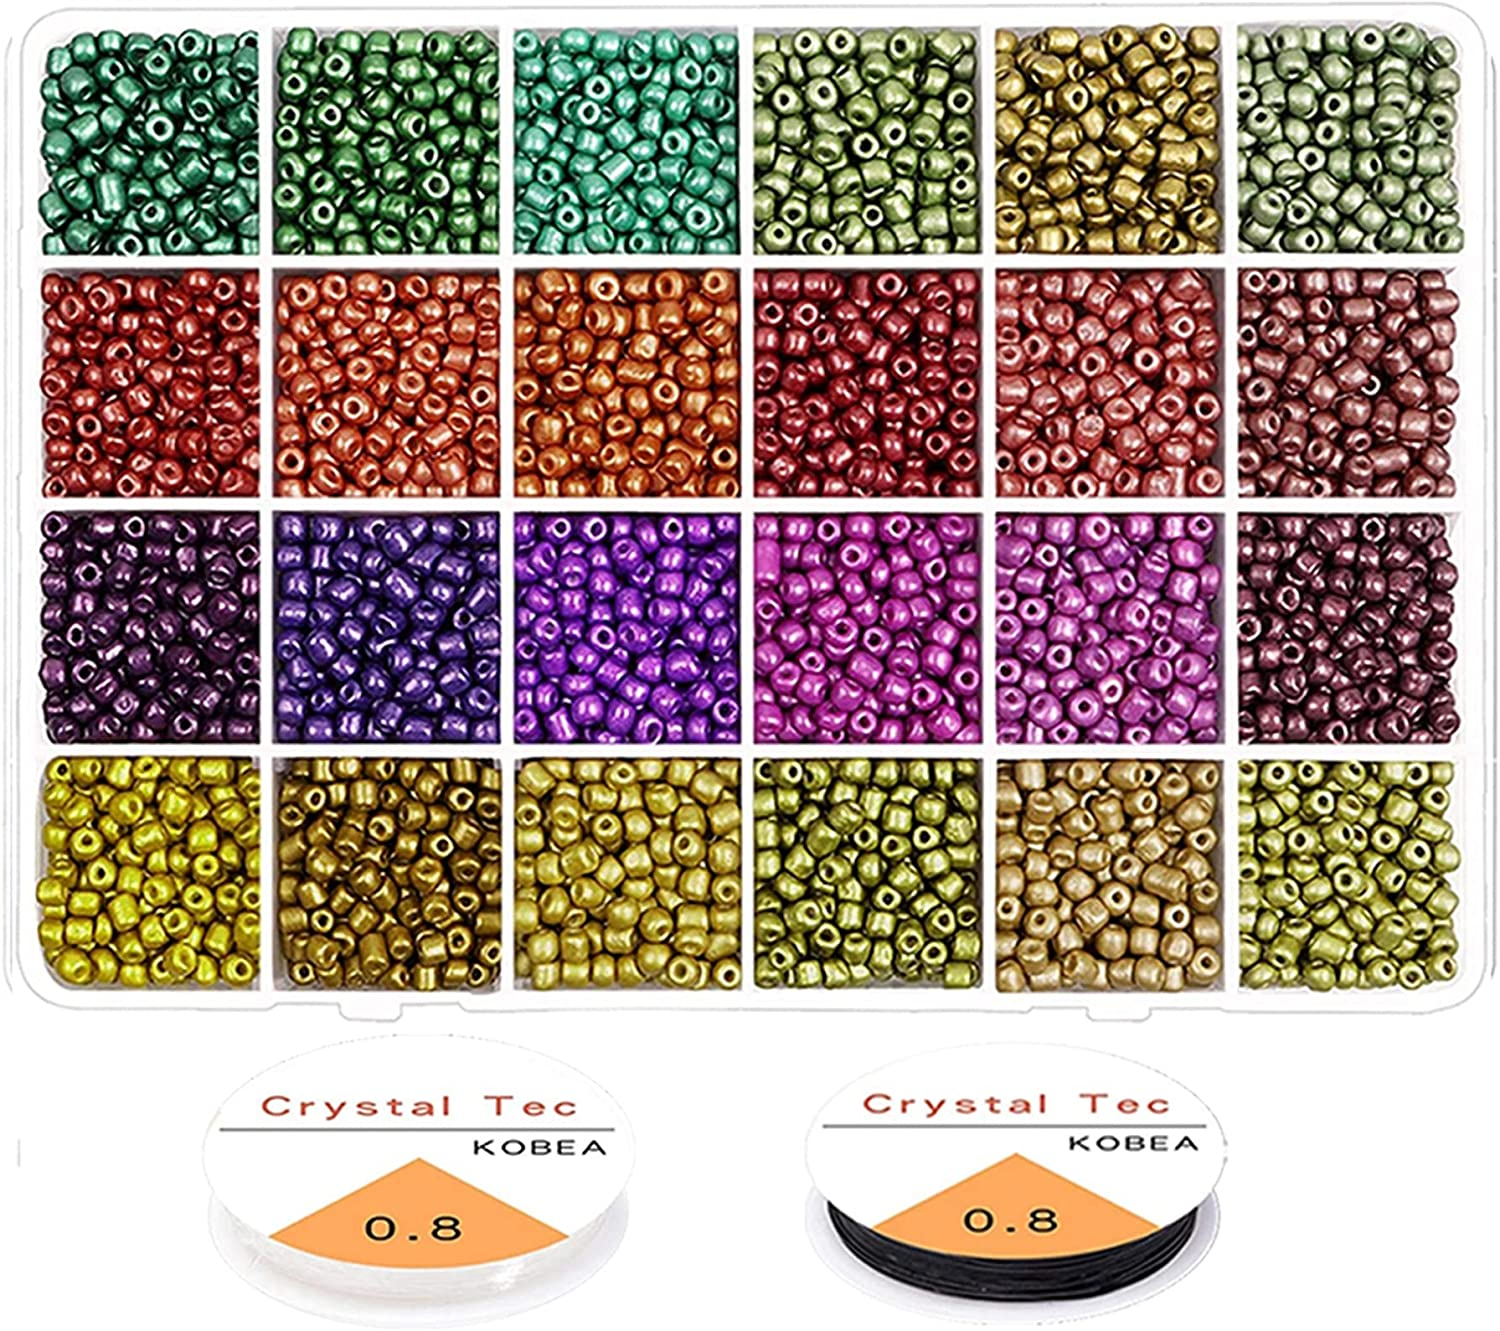 kengbi Bracelet Making Max 46% OFF Sale special price Kit Colorful Jewelr Craft Pearl for Beads